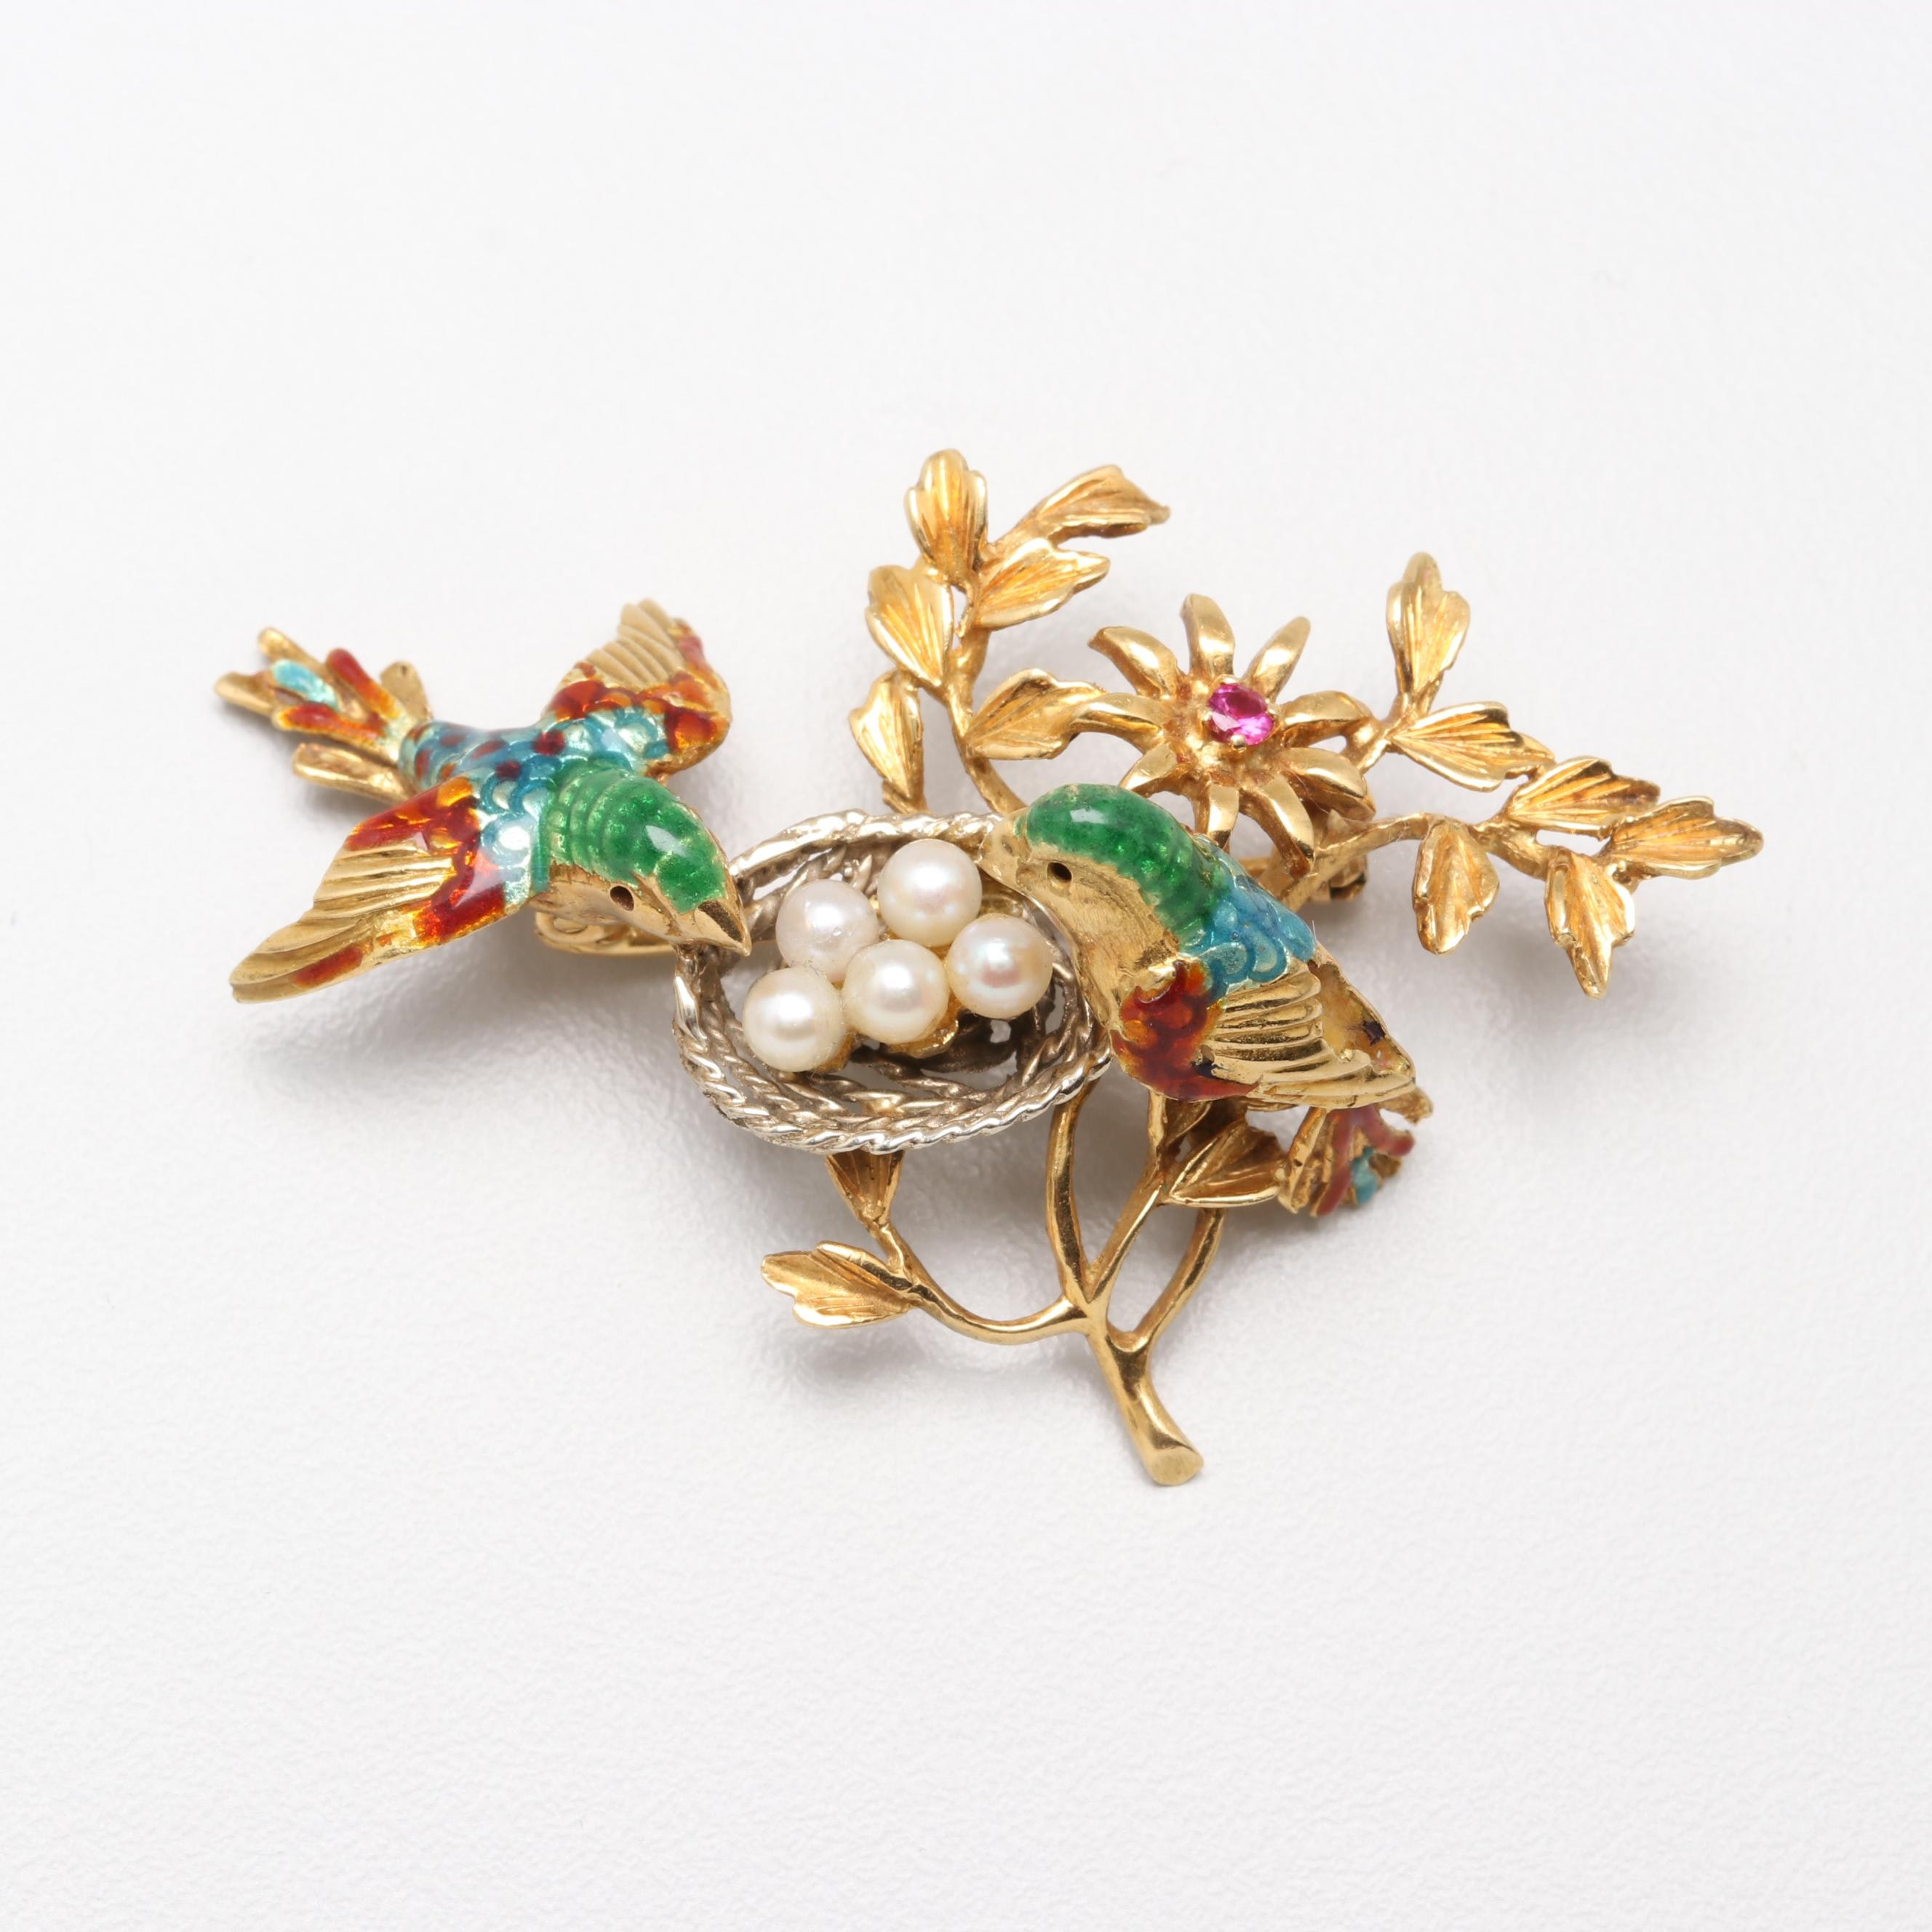 Italian 18K Yellow Gold Cultured Pearl and Synthetic Ruby Birds with Nest Brooch